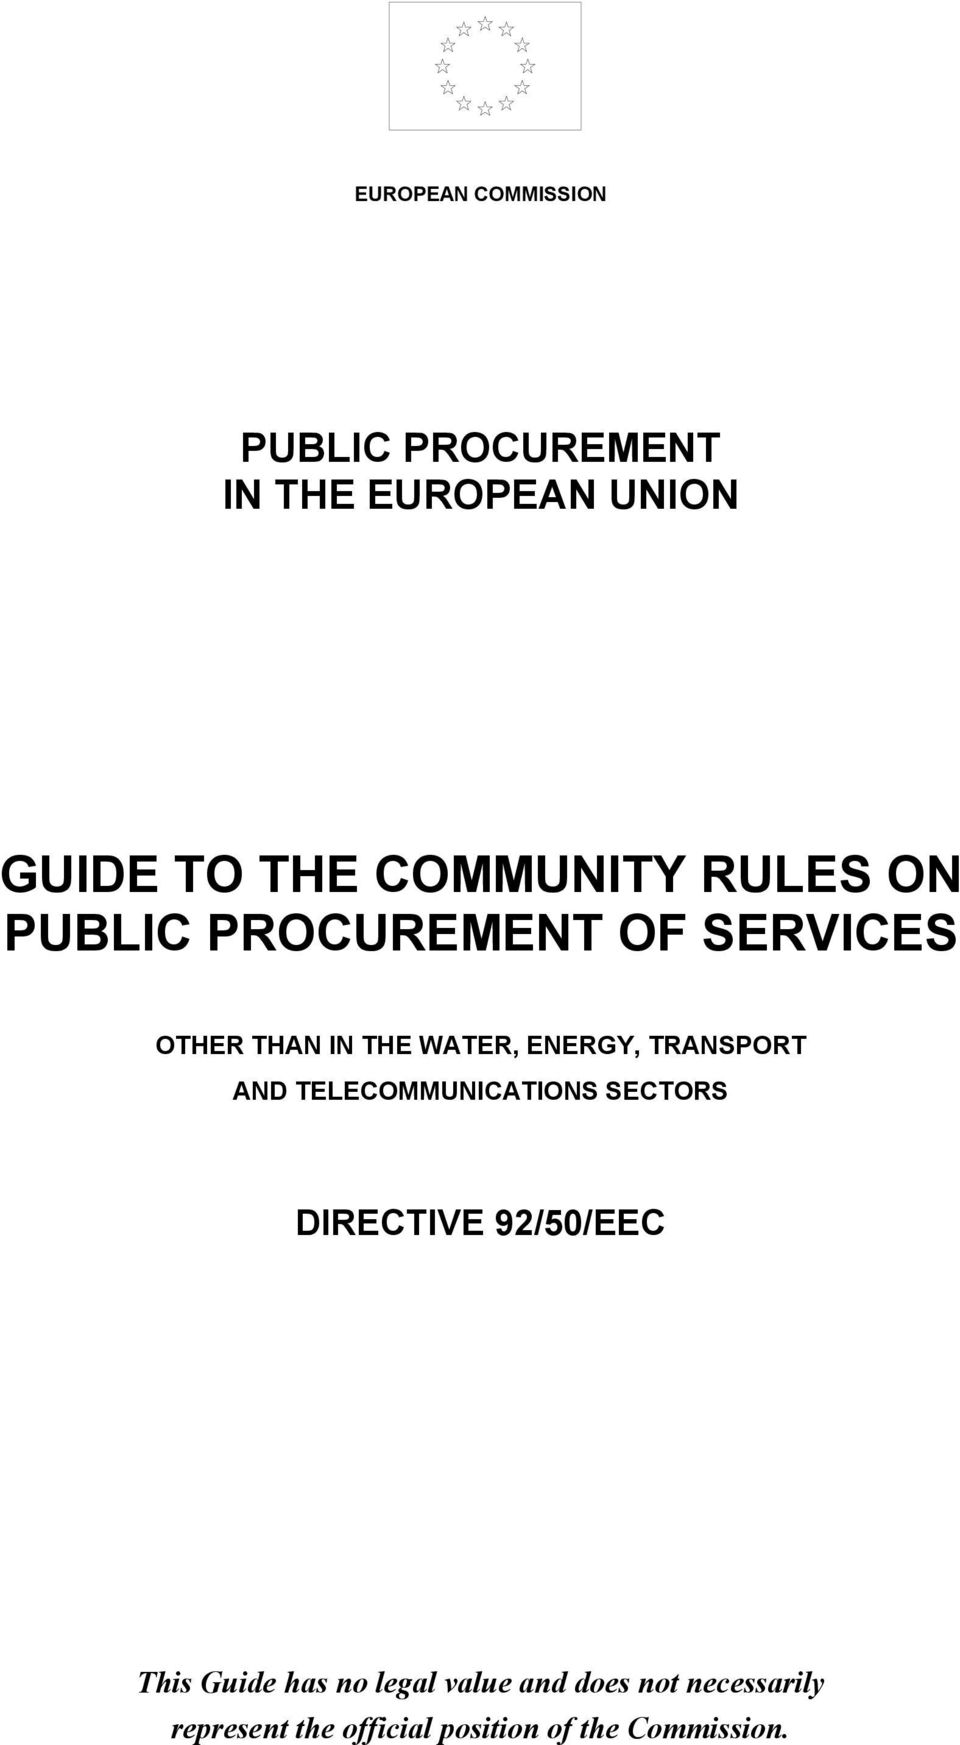 ENERGY, TRANSPORT AND TELECOMMUNICATIONS SECTORS DIRECTIVE 92/50/EEC This Guide